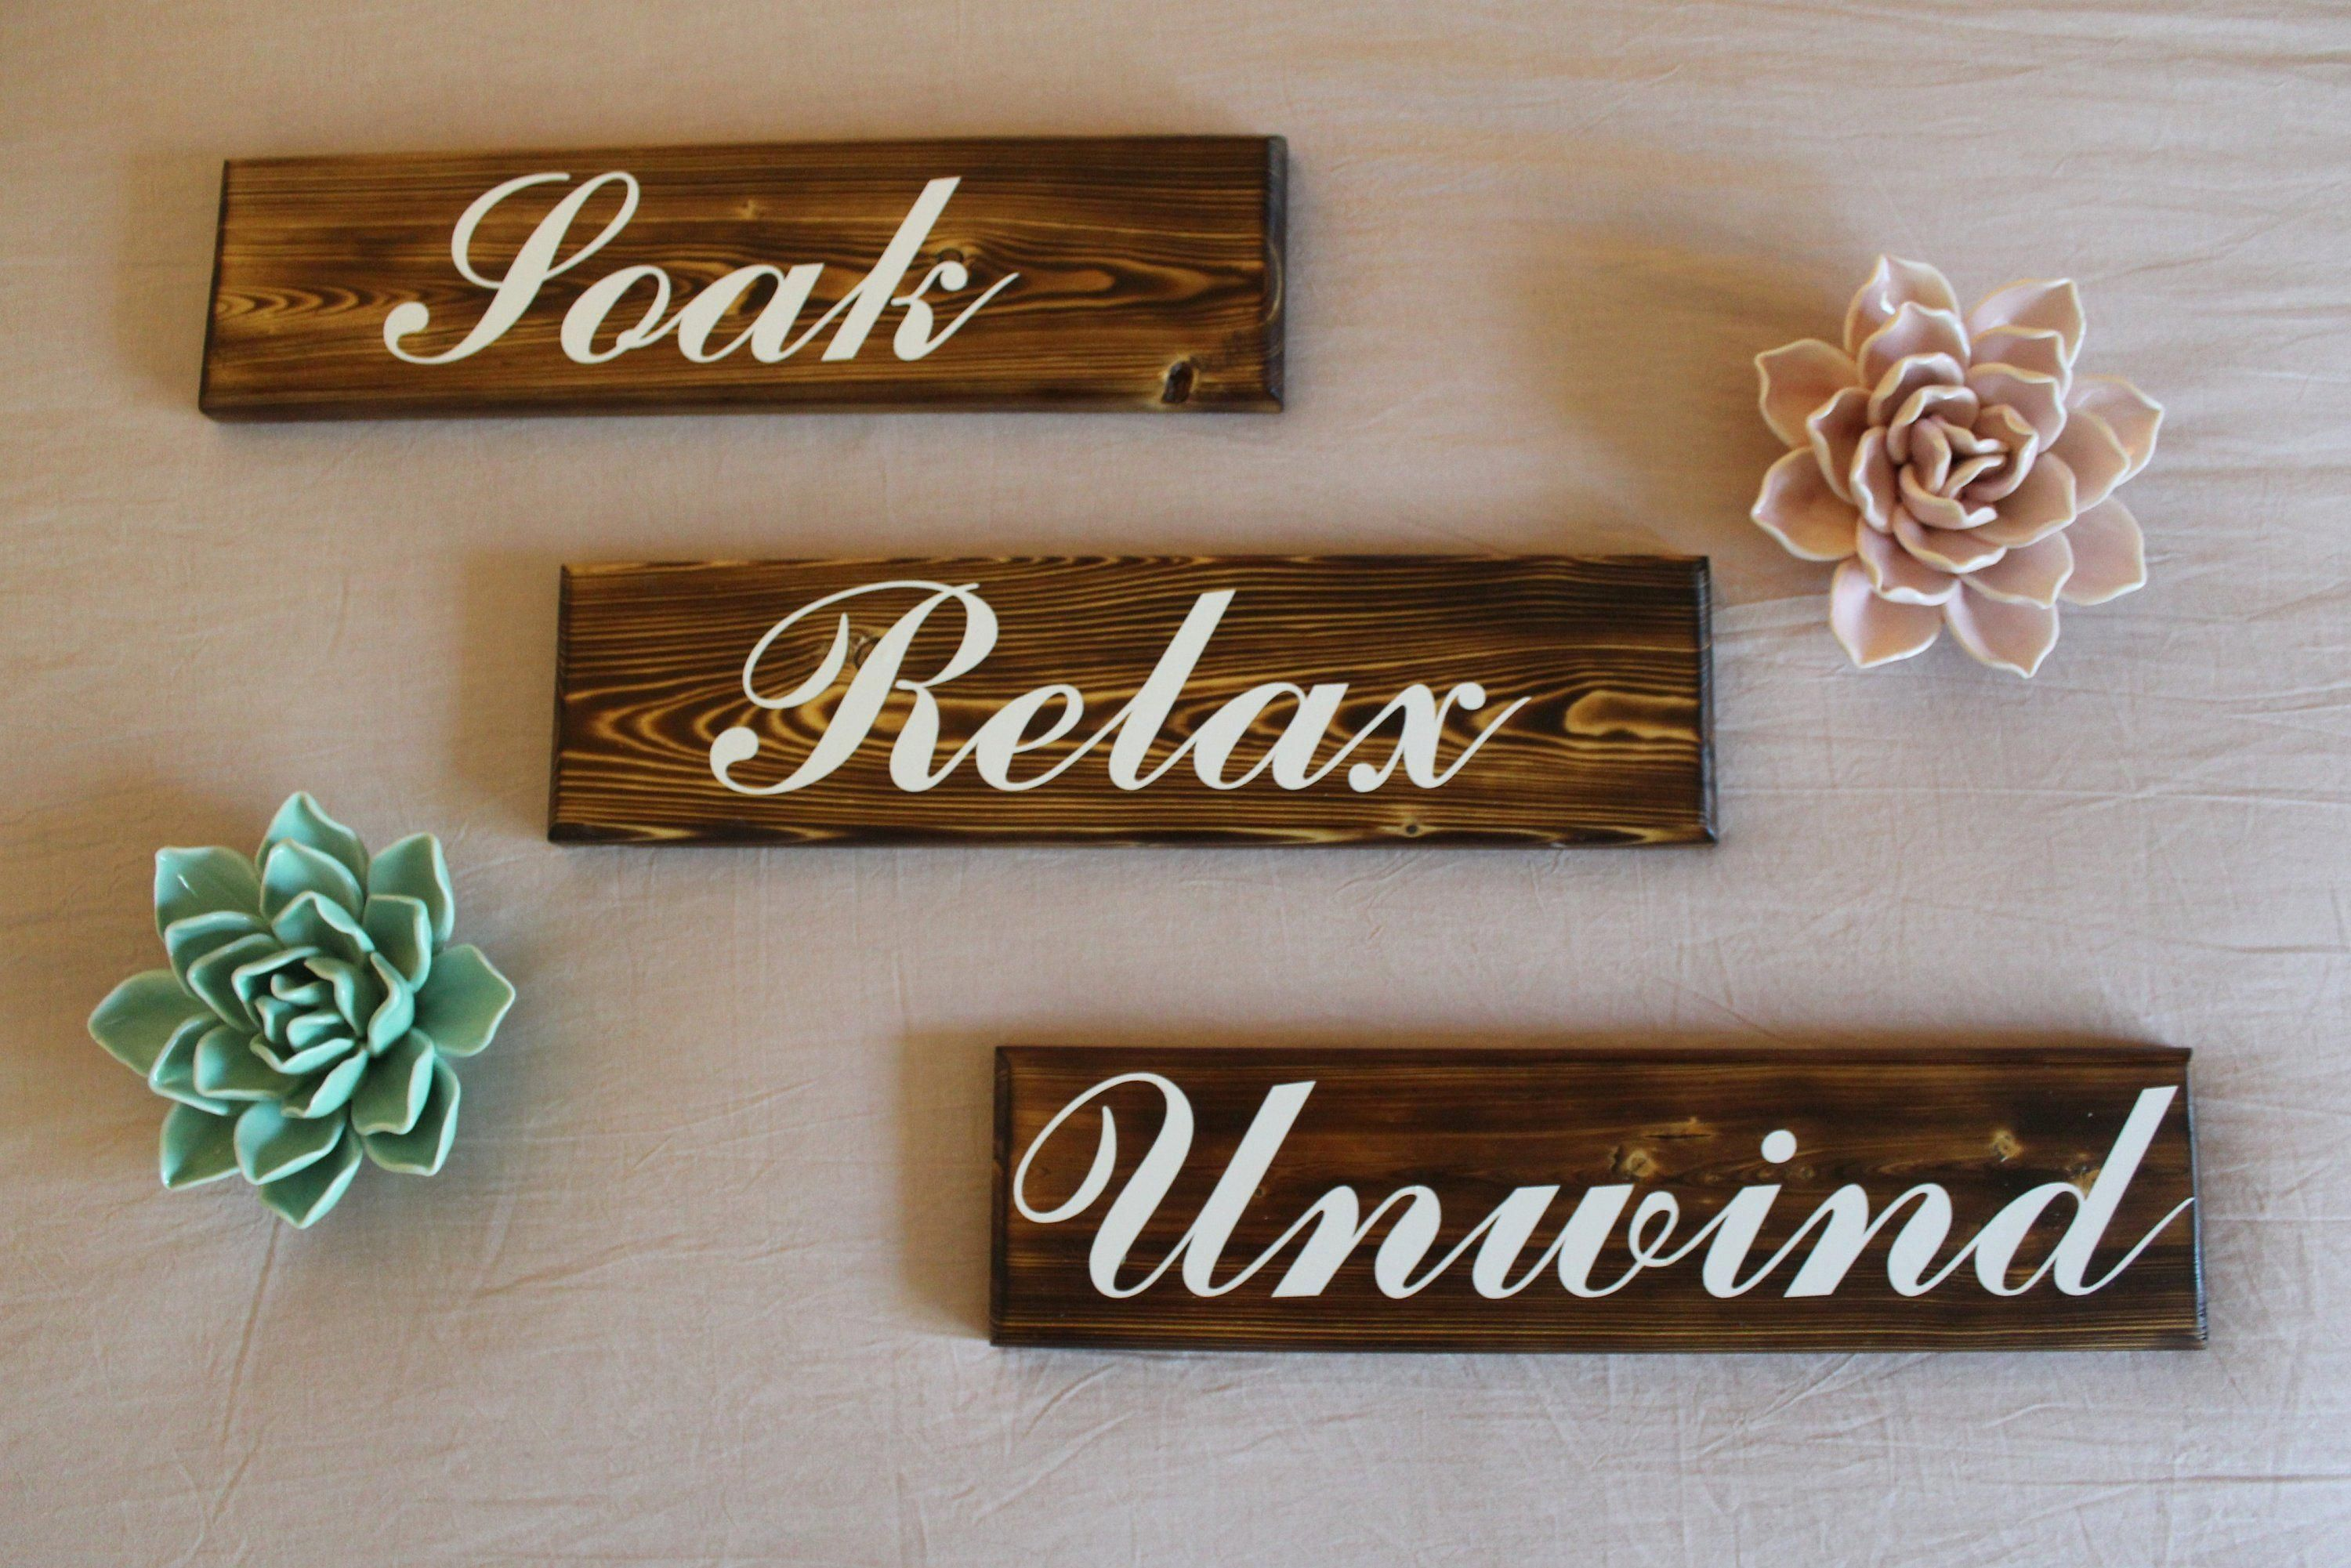 More fun with and wood burning techniques  These new signs are available now in our shop Our Soak Relax Unwind sign set is perfect for creating that feel to your bathroom...